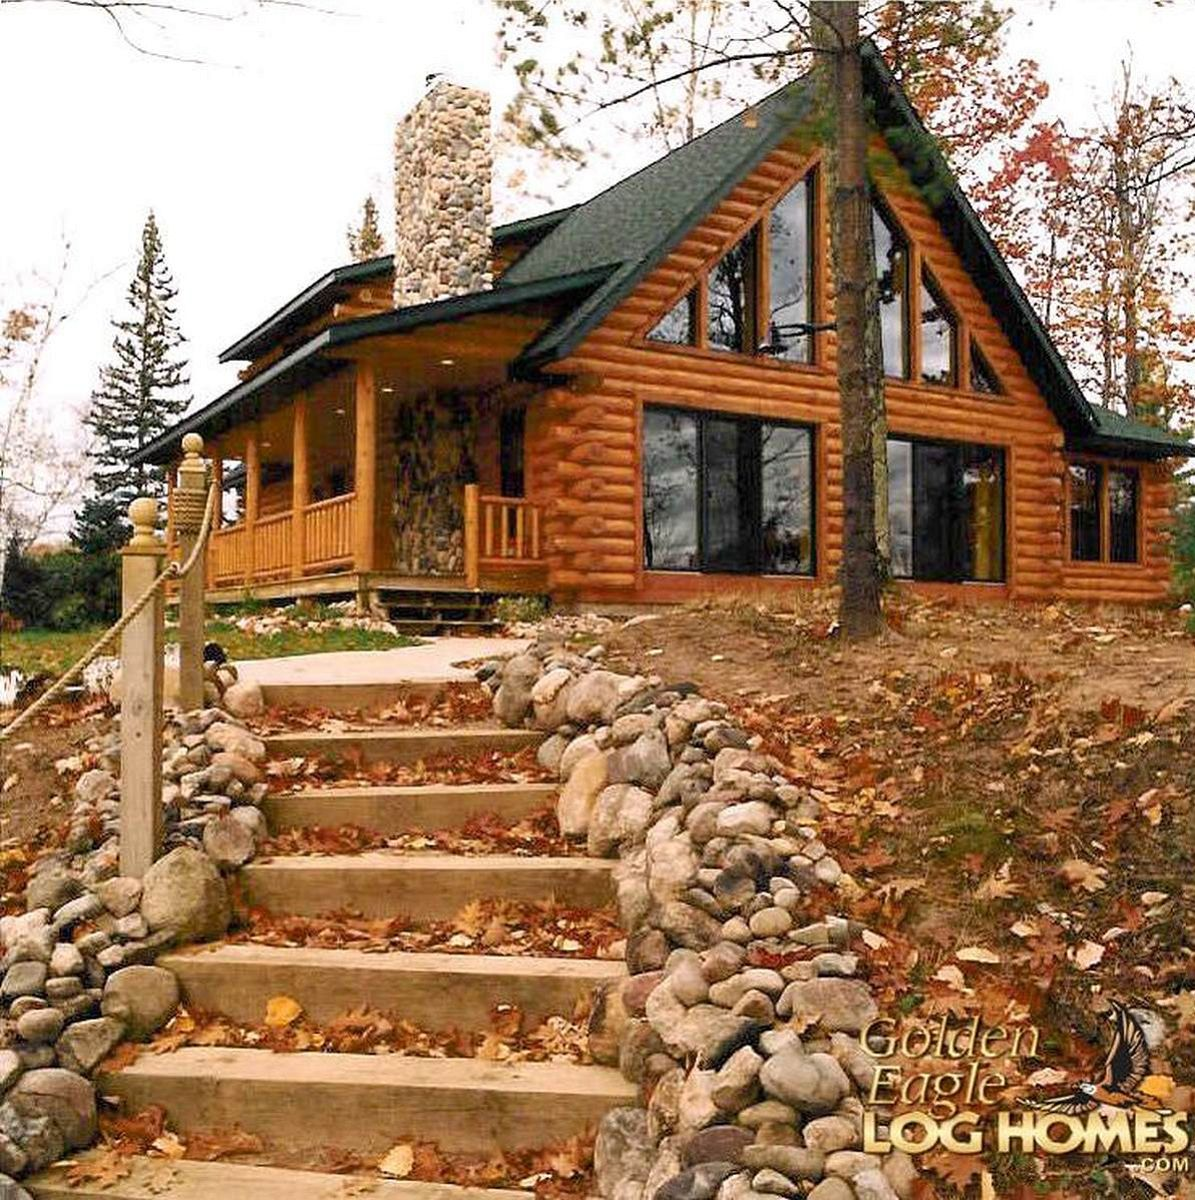 Log home by golden eagle log homes golden eagle log logs for Log home pictures exterior